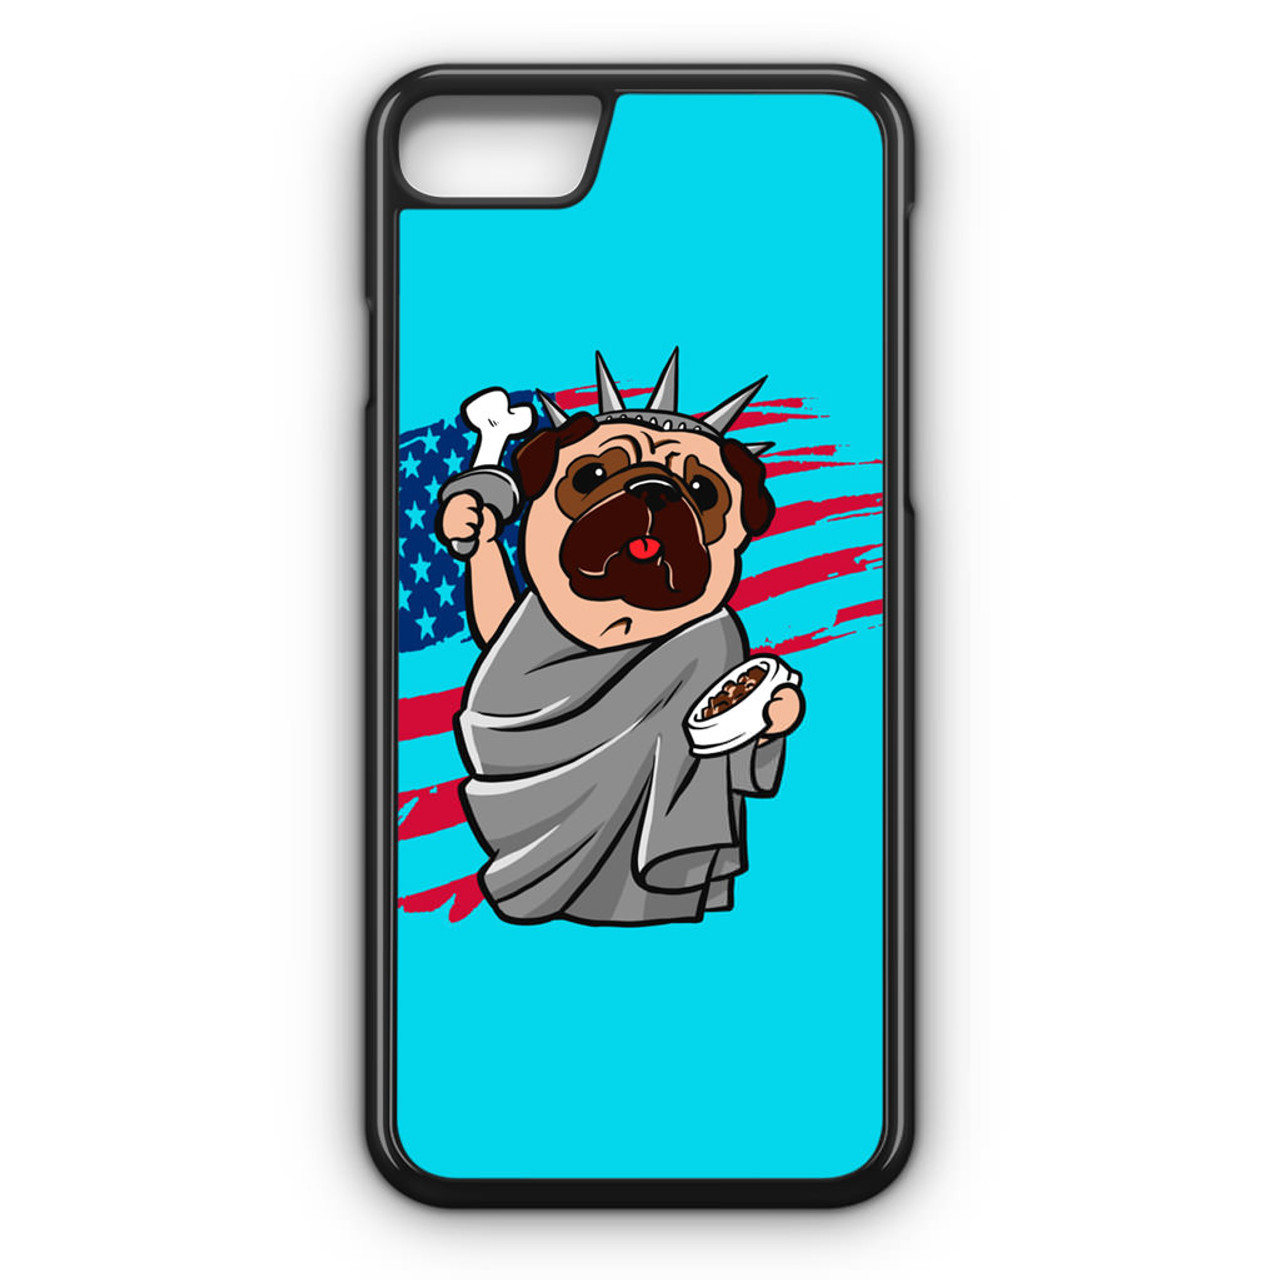 huge selection of 4f62c 182a0 4th of July, Independence day Pug iPhone 8 Case